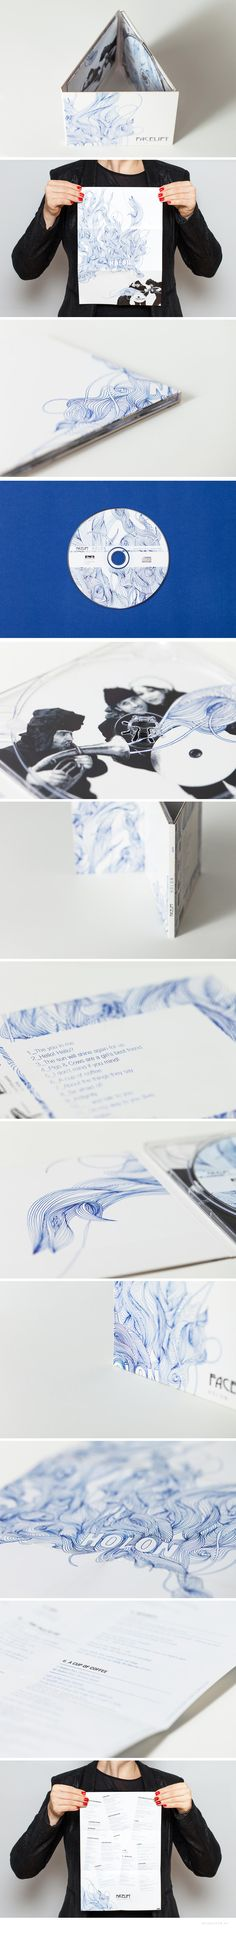 Cover Design for Facelift Music by Nicouleur #coverdesign #cd #facelift #graz #design #austria #nicouleur #pen #lines #blue #papercase #music